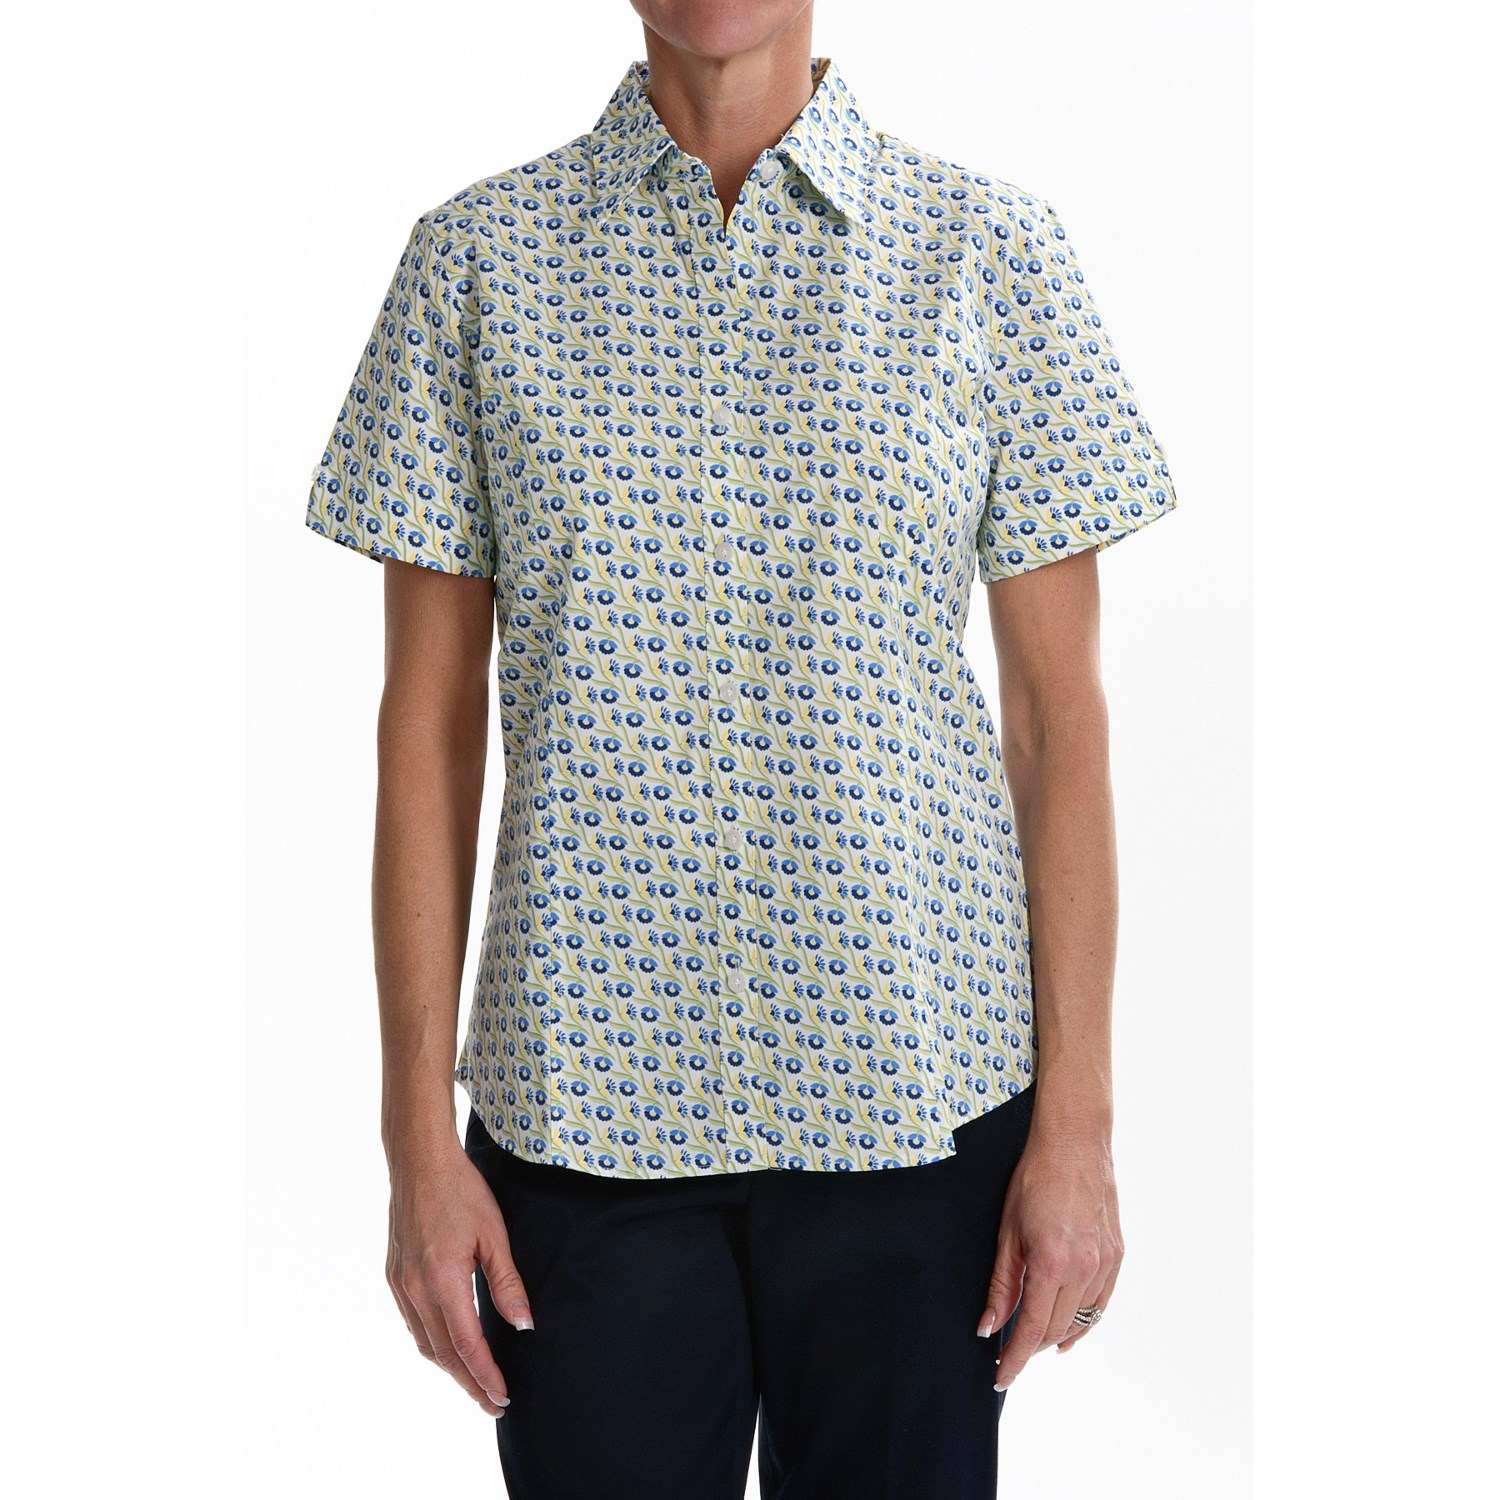 Foxcroft Wrinkle Free Camp Shirt Fitted Short Sleeve